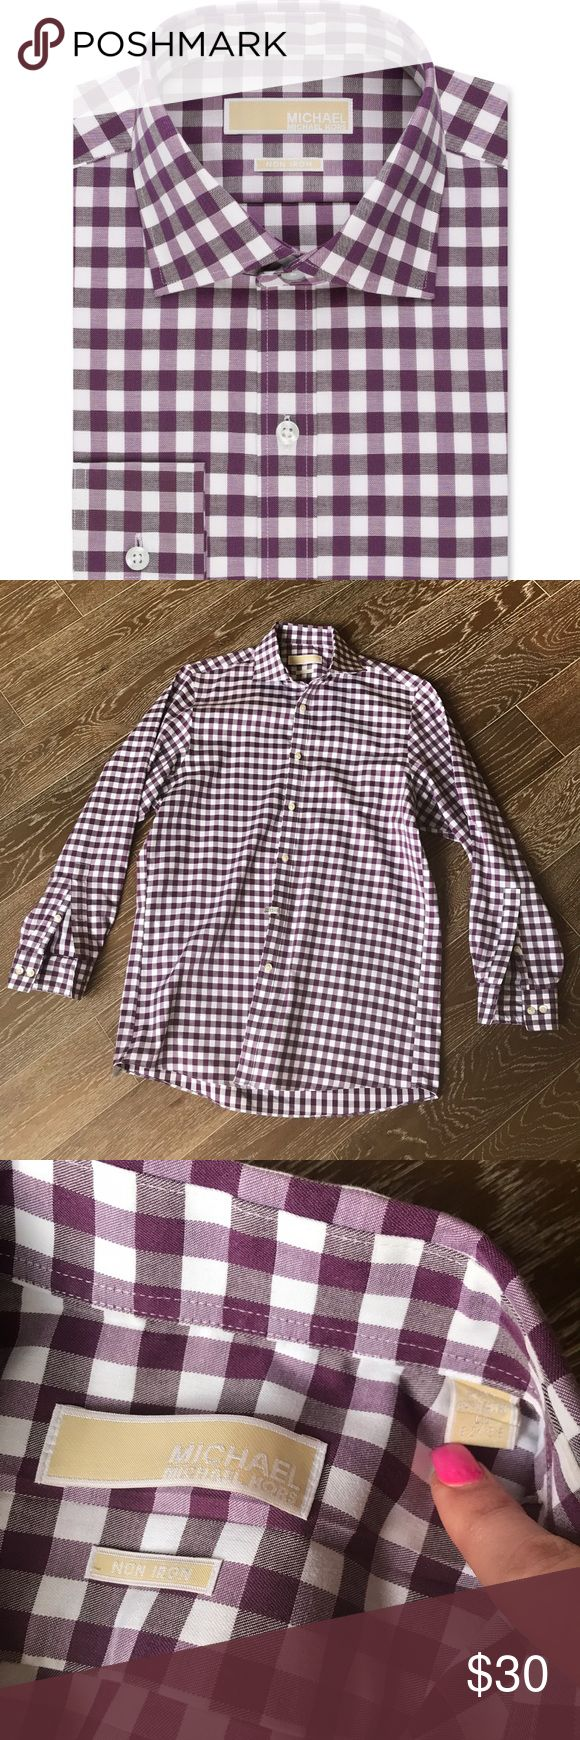 Michael Kors non iron dress shirt bold gingham Bold gingham print dress shirt in purple and white. Nice dress shirt in excellent condition with no flaws. Size 15 32/33. MICHAEL Michael Kors Shirts Dress Shirts